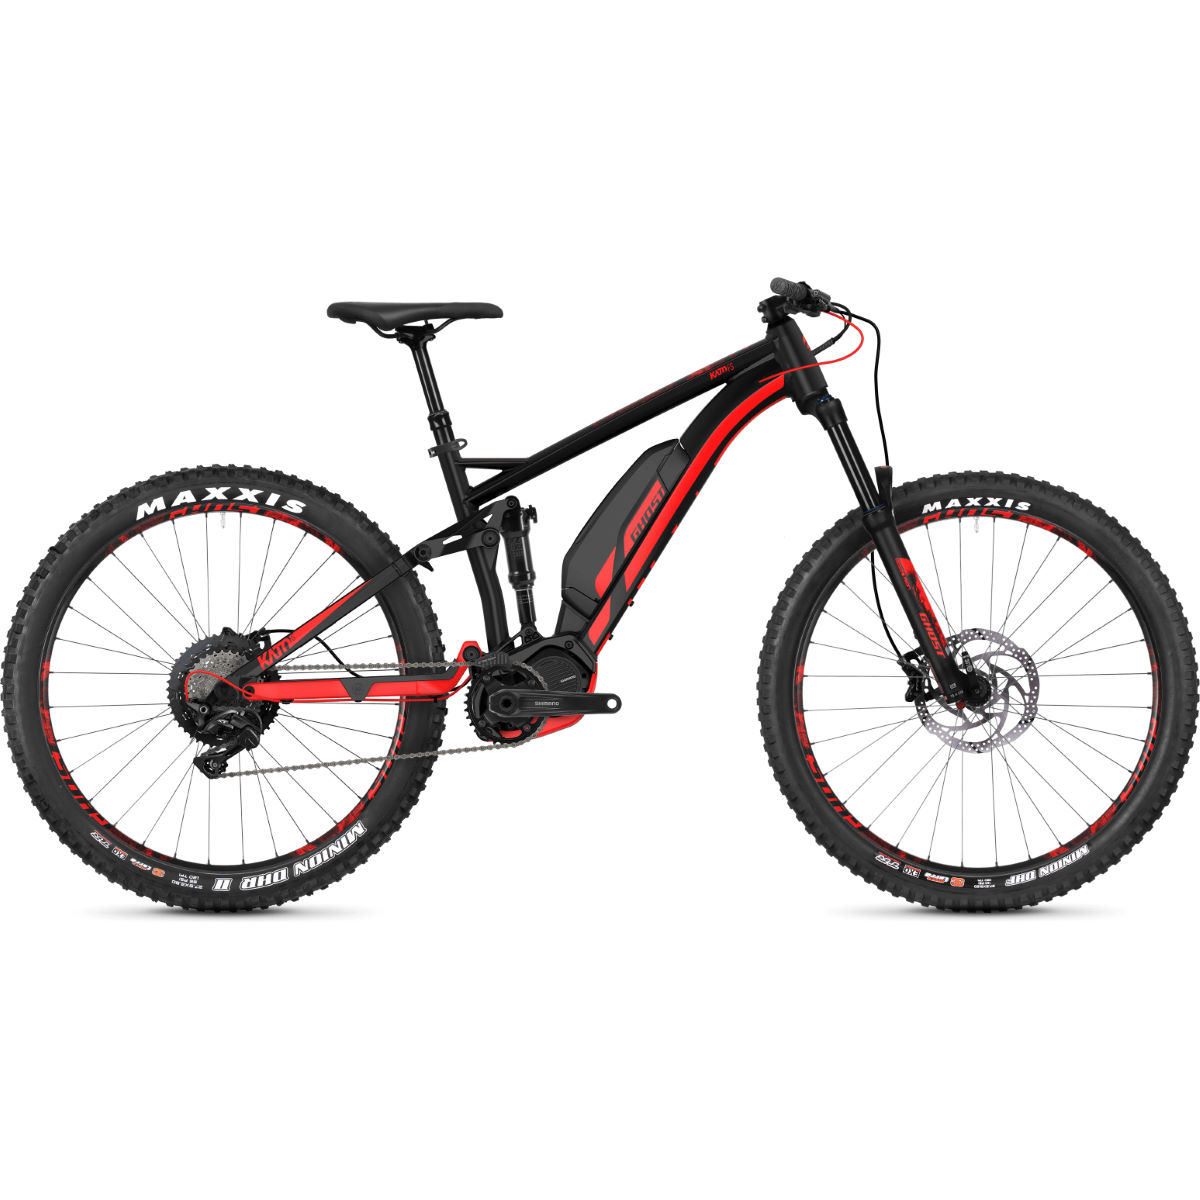 "Ghost Kato S4.7+ 27.5""+Full Suspension E-Bike - Bicicletas eléctricas de montaña"